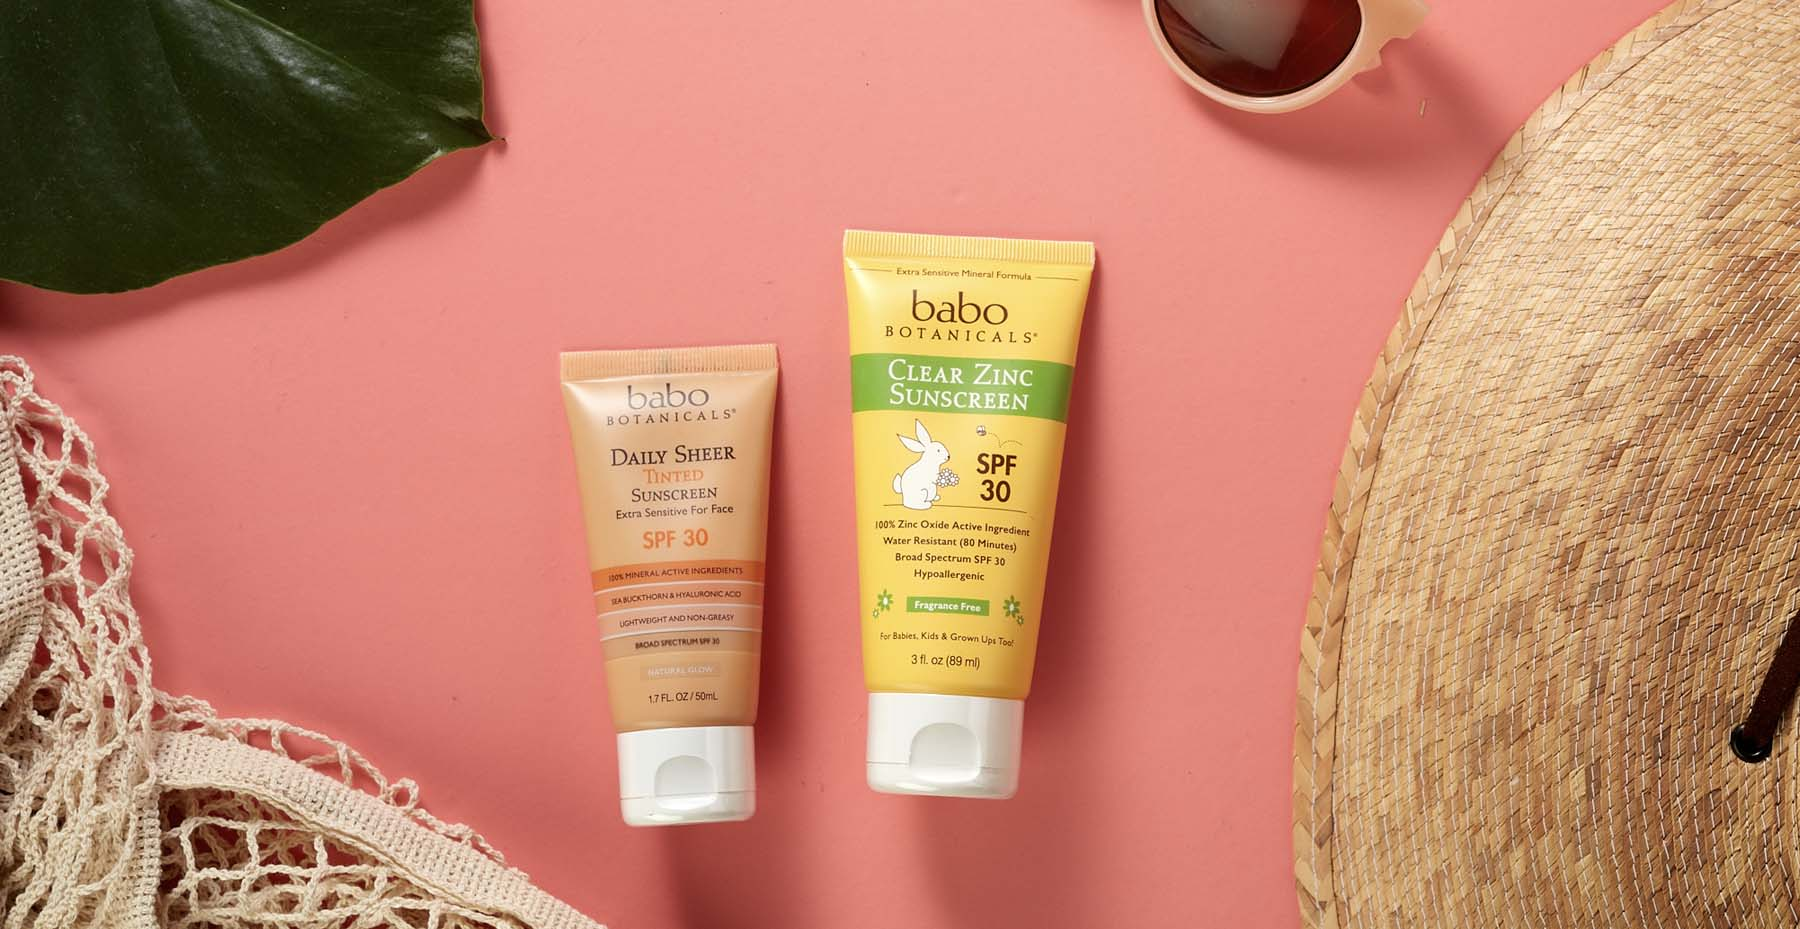 Babo botanical sun products